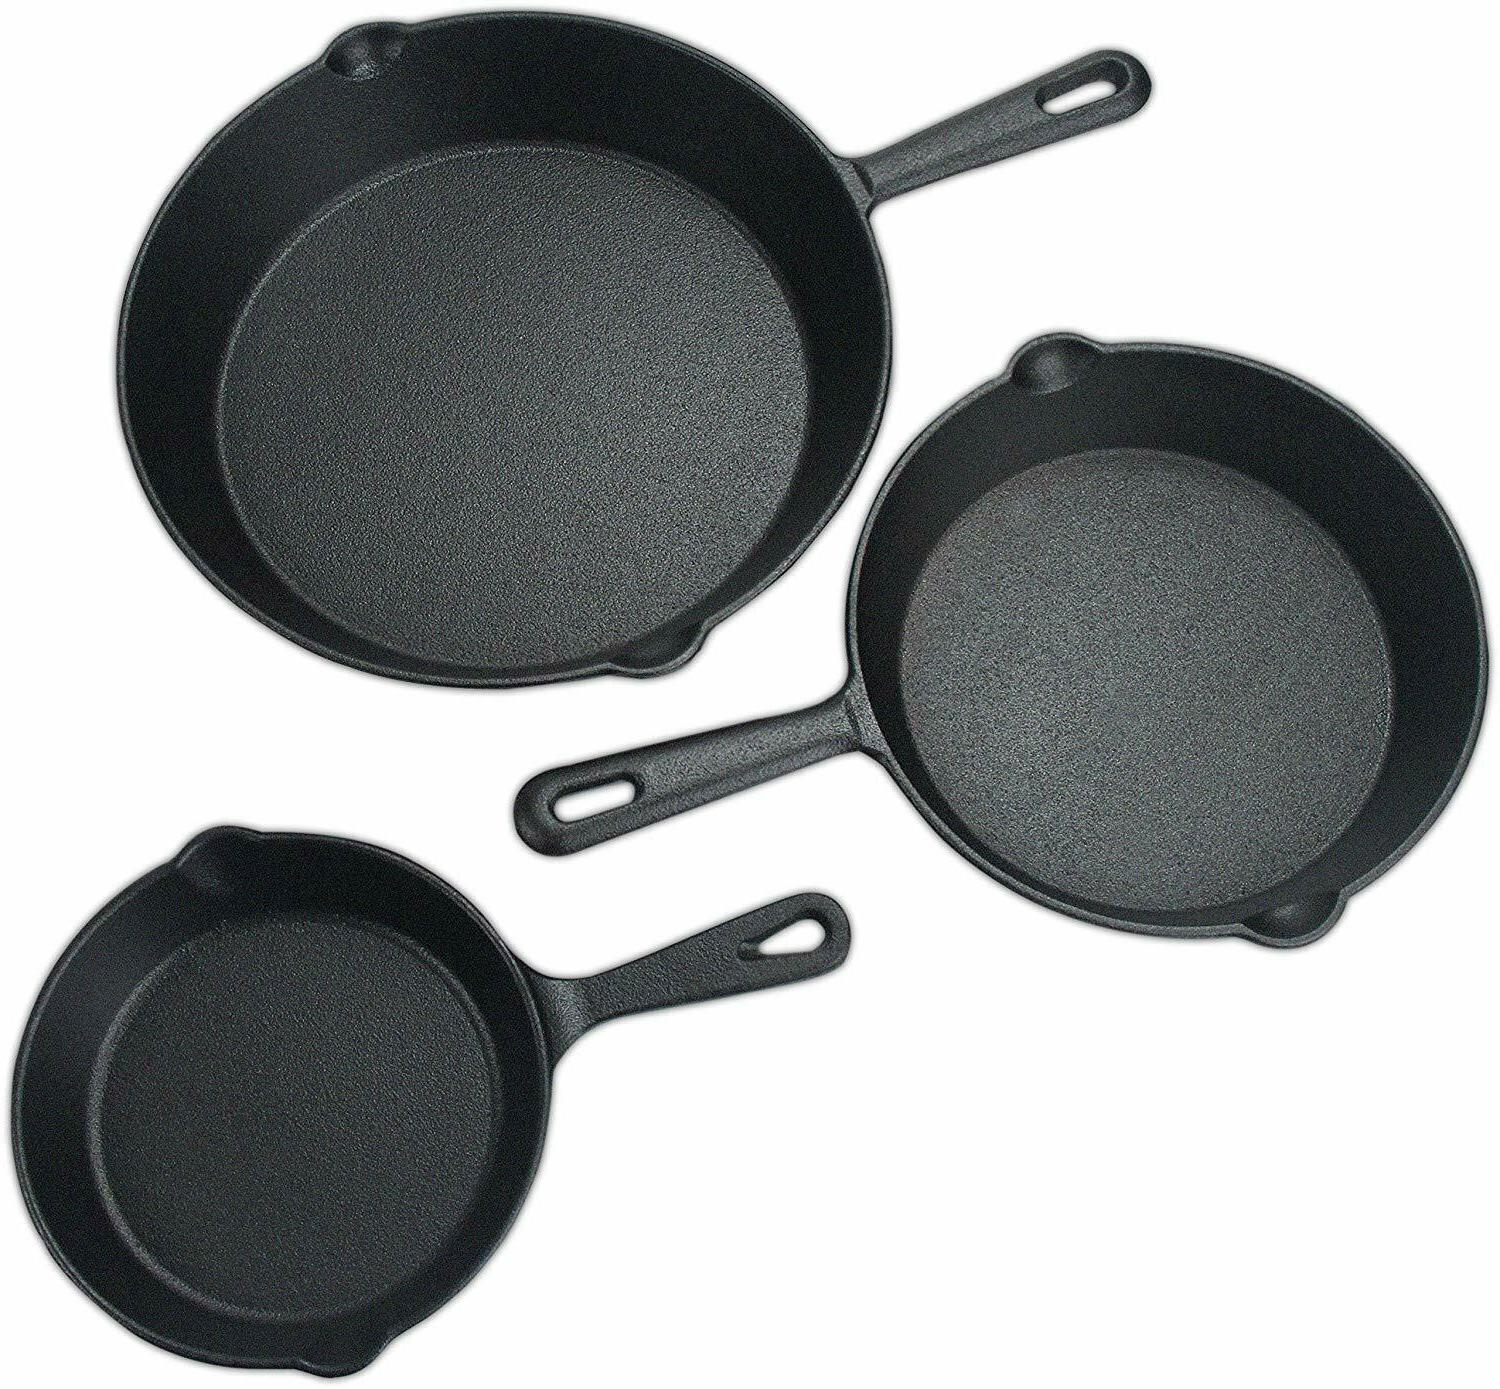 Pre Seasoned Cast Iron Skillet Set 3 Pieces  by Utopia KItch